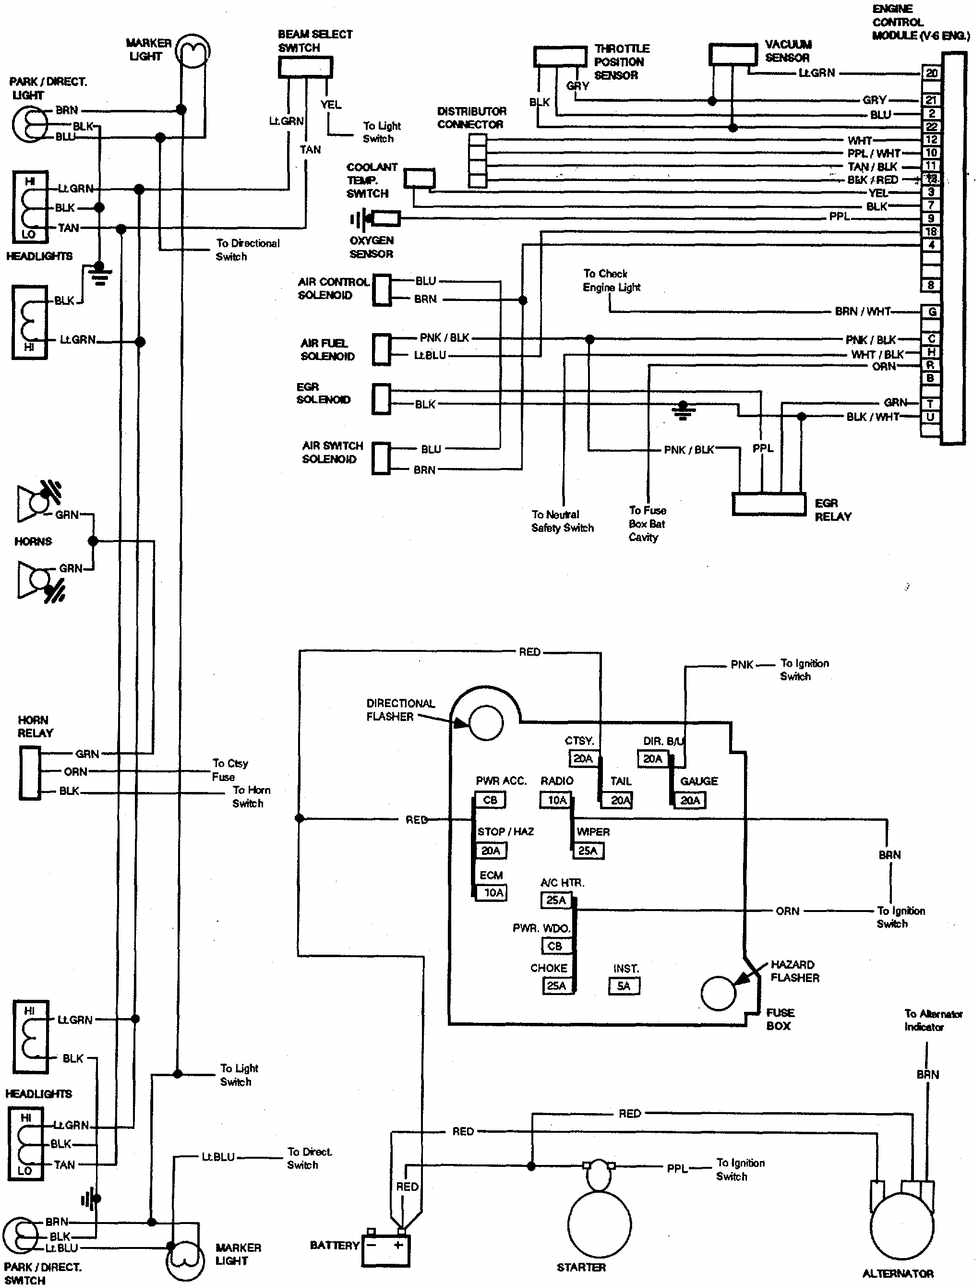 Chevrolet V Trucks Electrical Wiring Diagram on 2001 Dodge Dakota 4 7 Wiring Diagrams